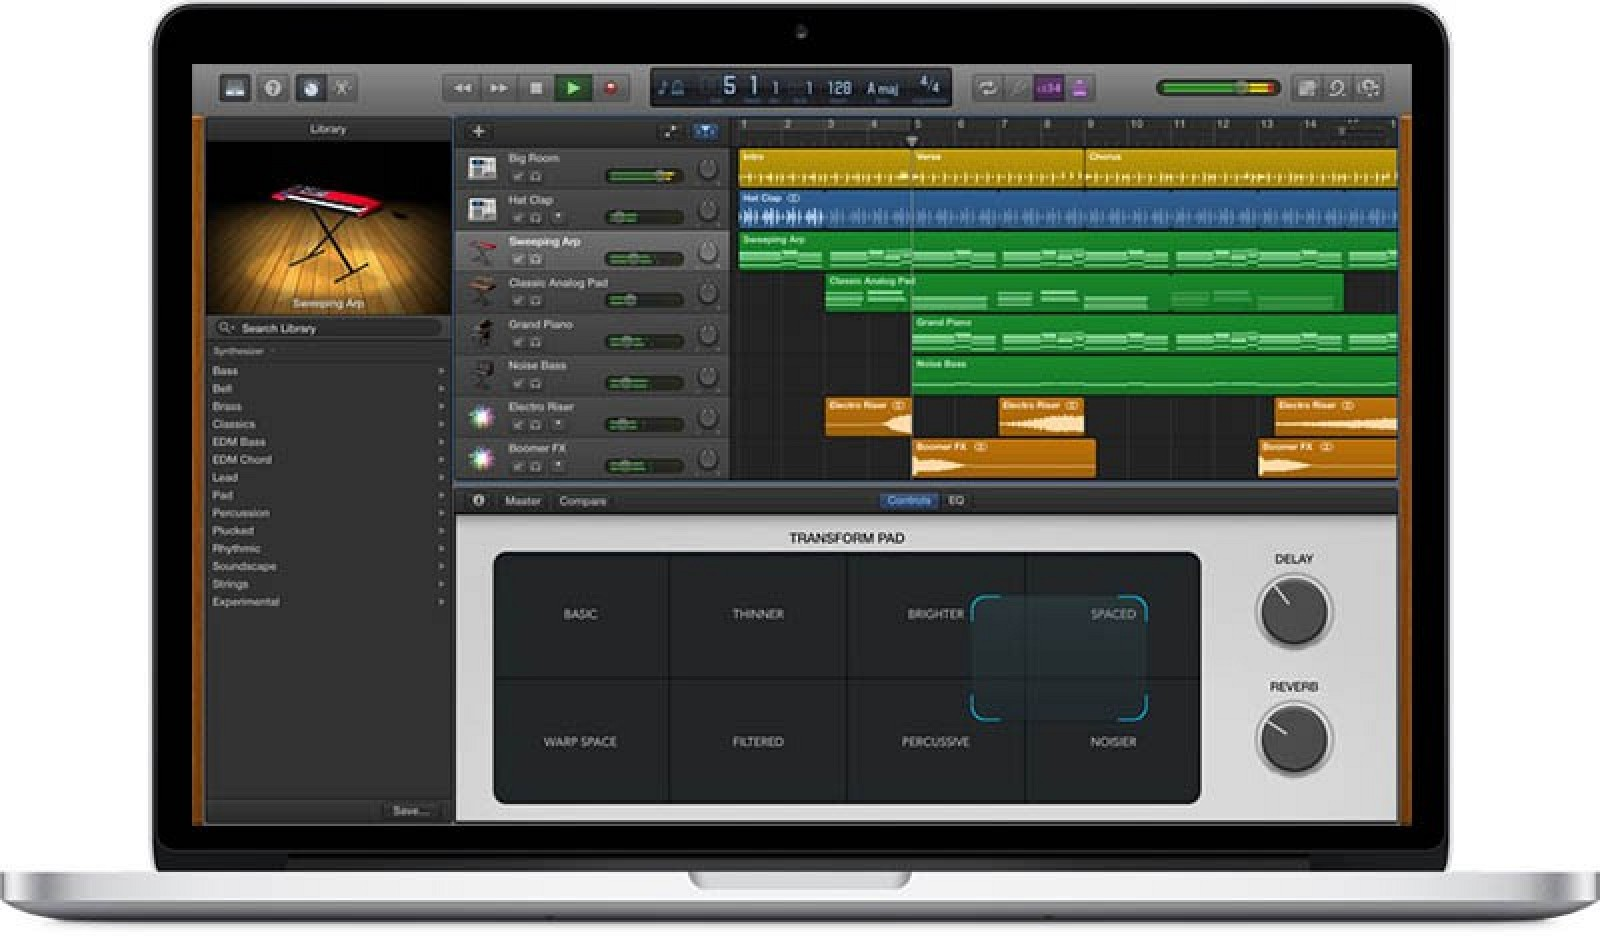 How To Send Music From Iphone To Mac